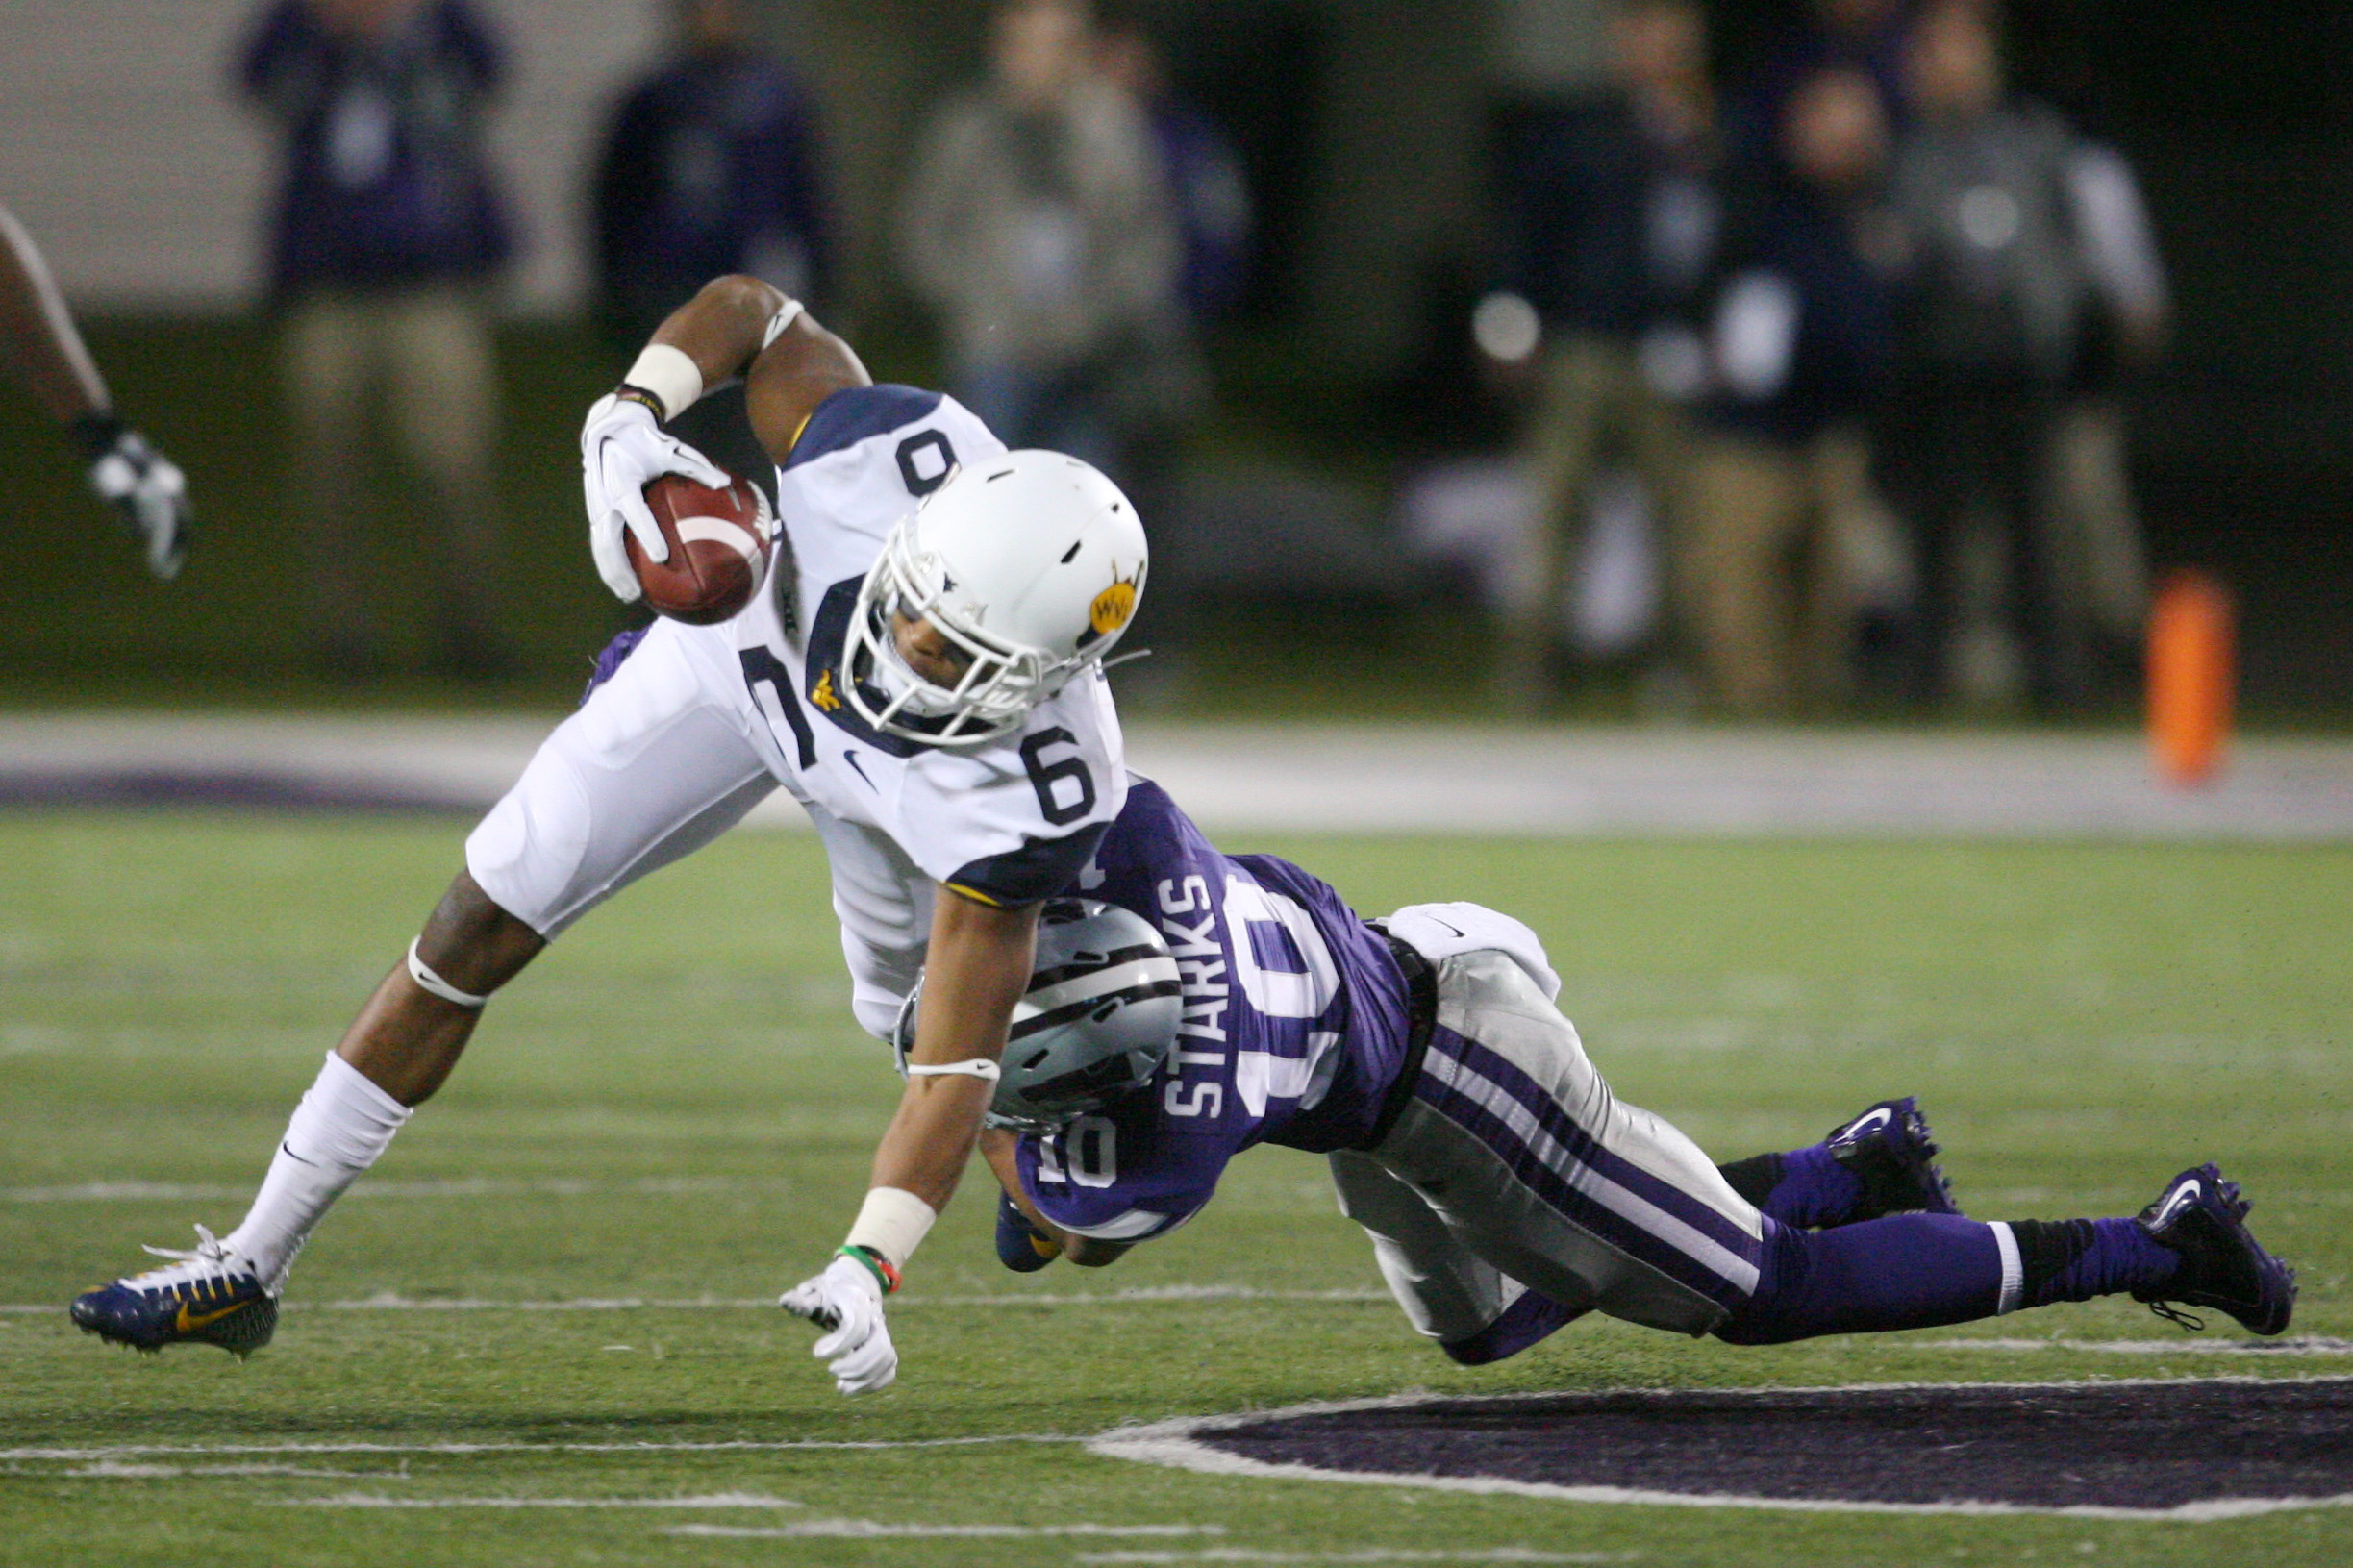 Donnie Starks was part of the reason for a small K-State defensive turnaround late last season. Now it's time for his curtain call.